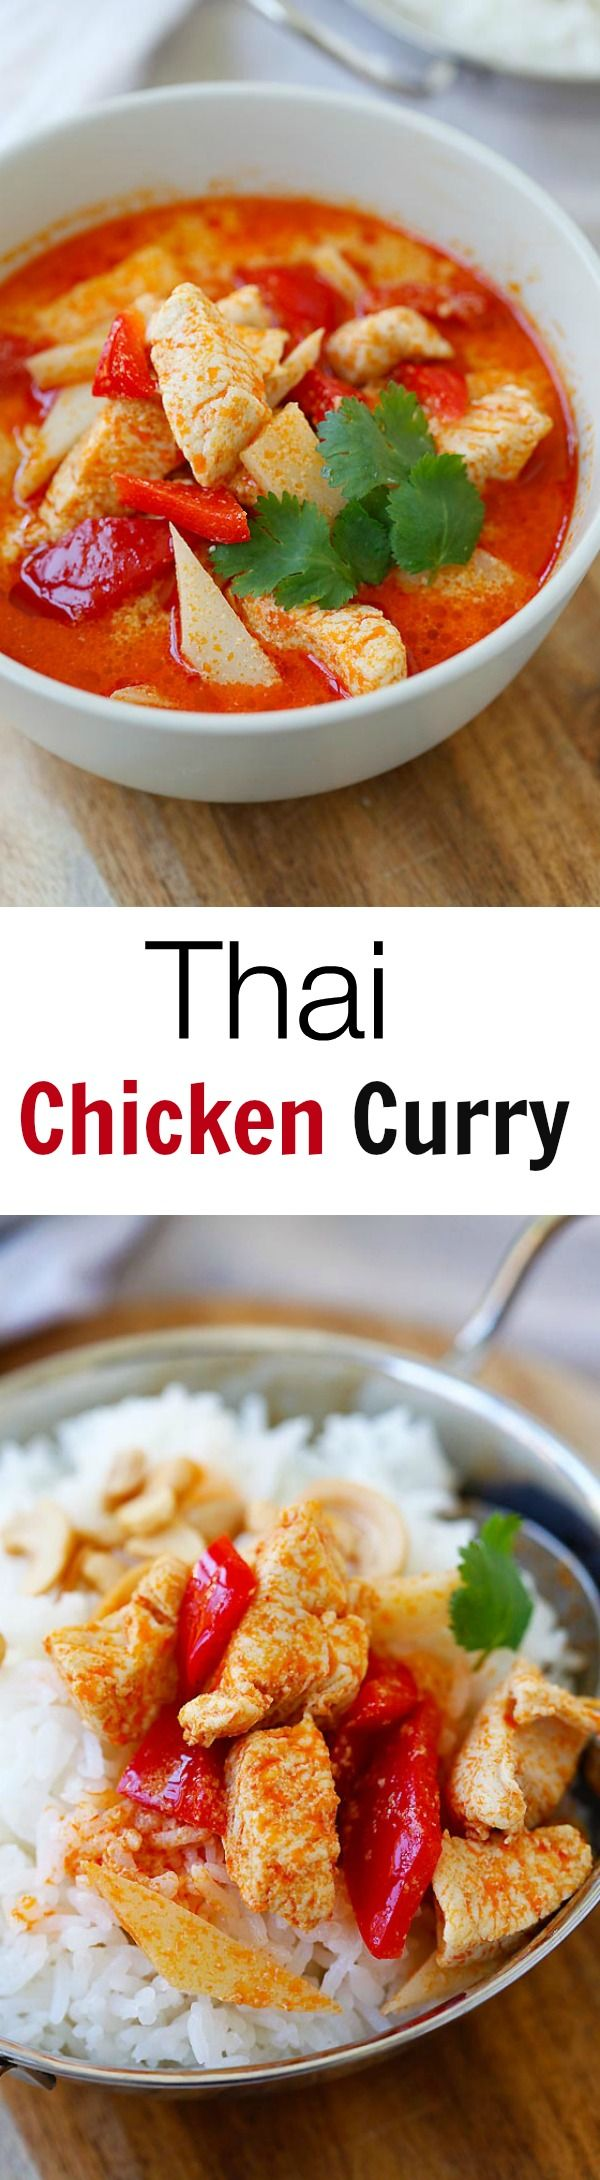 Thai Chicken Curry - homemade Thai chicken curry is SO easy to make with simple…